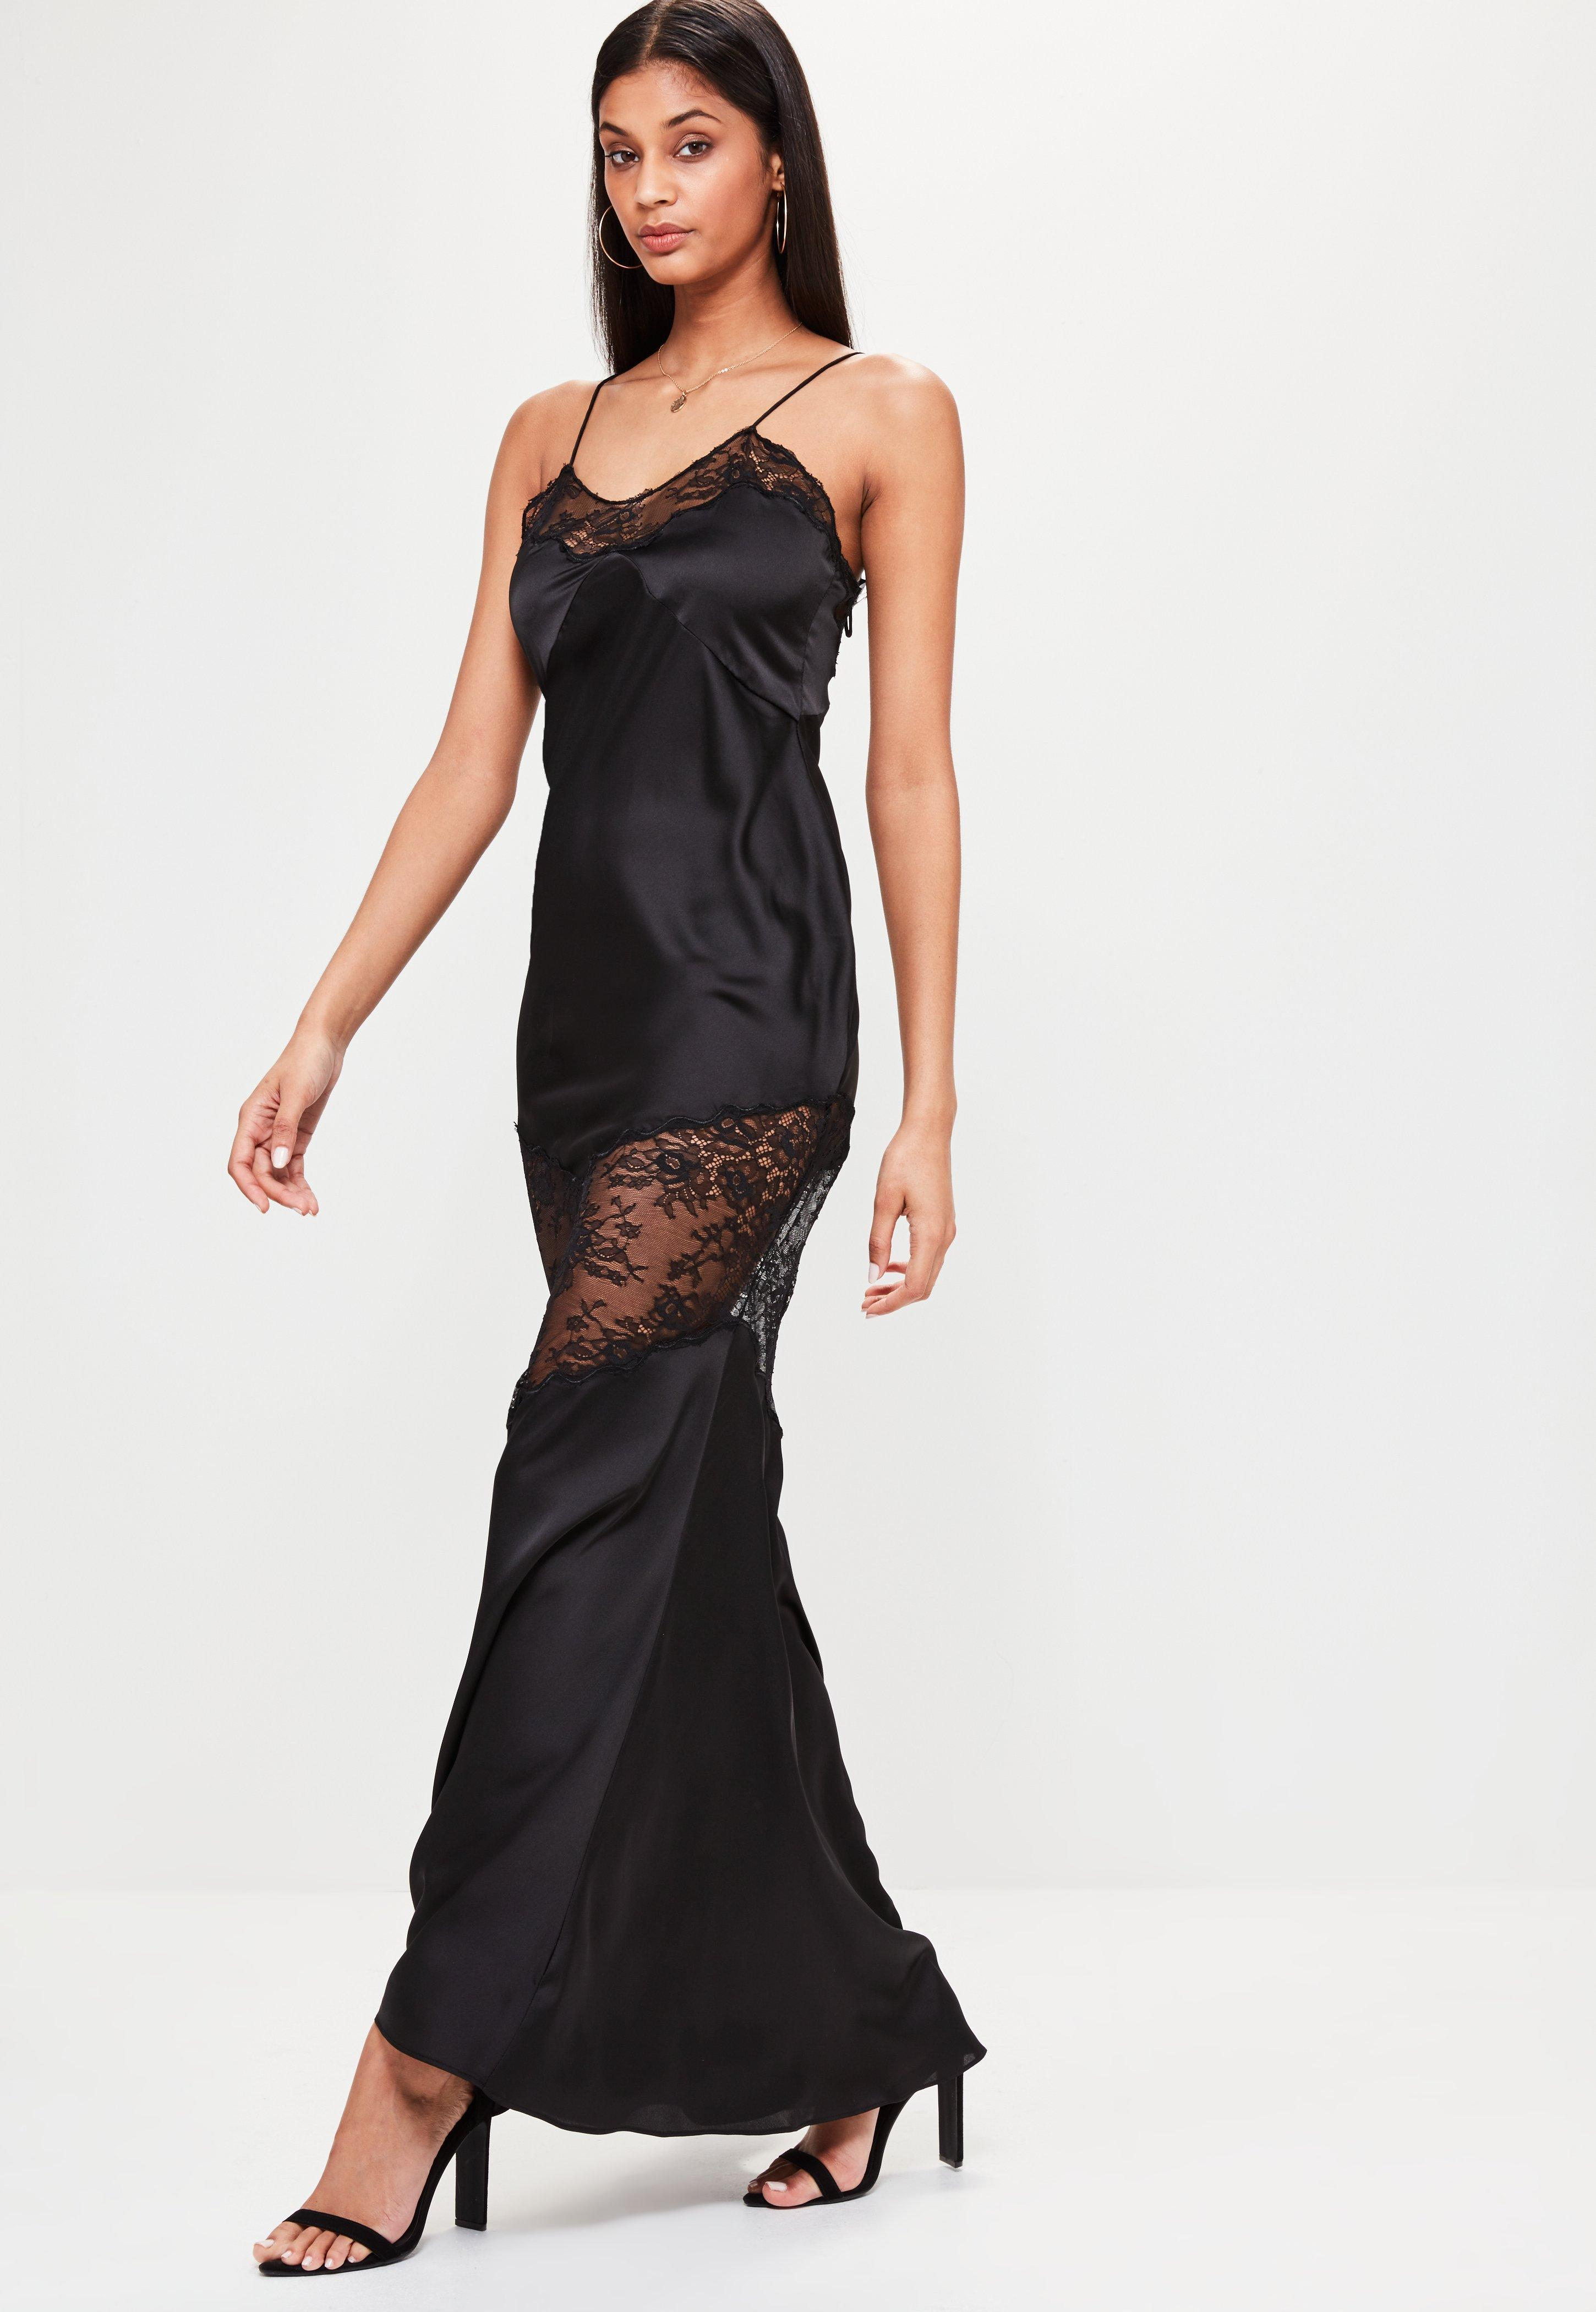 Lyst - Missguided Black Satin Lace Strappy Maxi Dress in Black